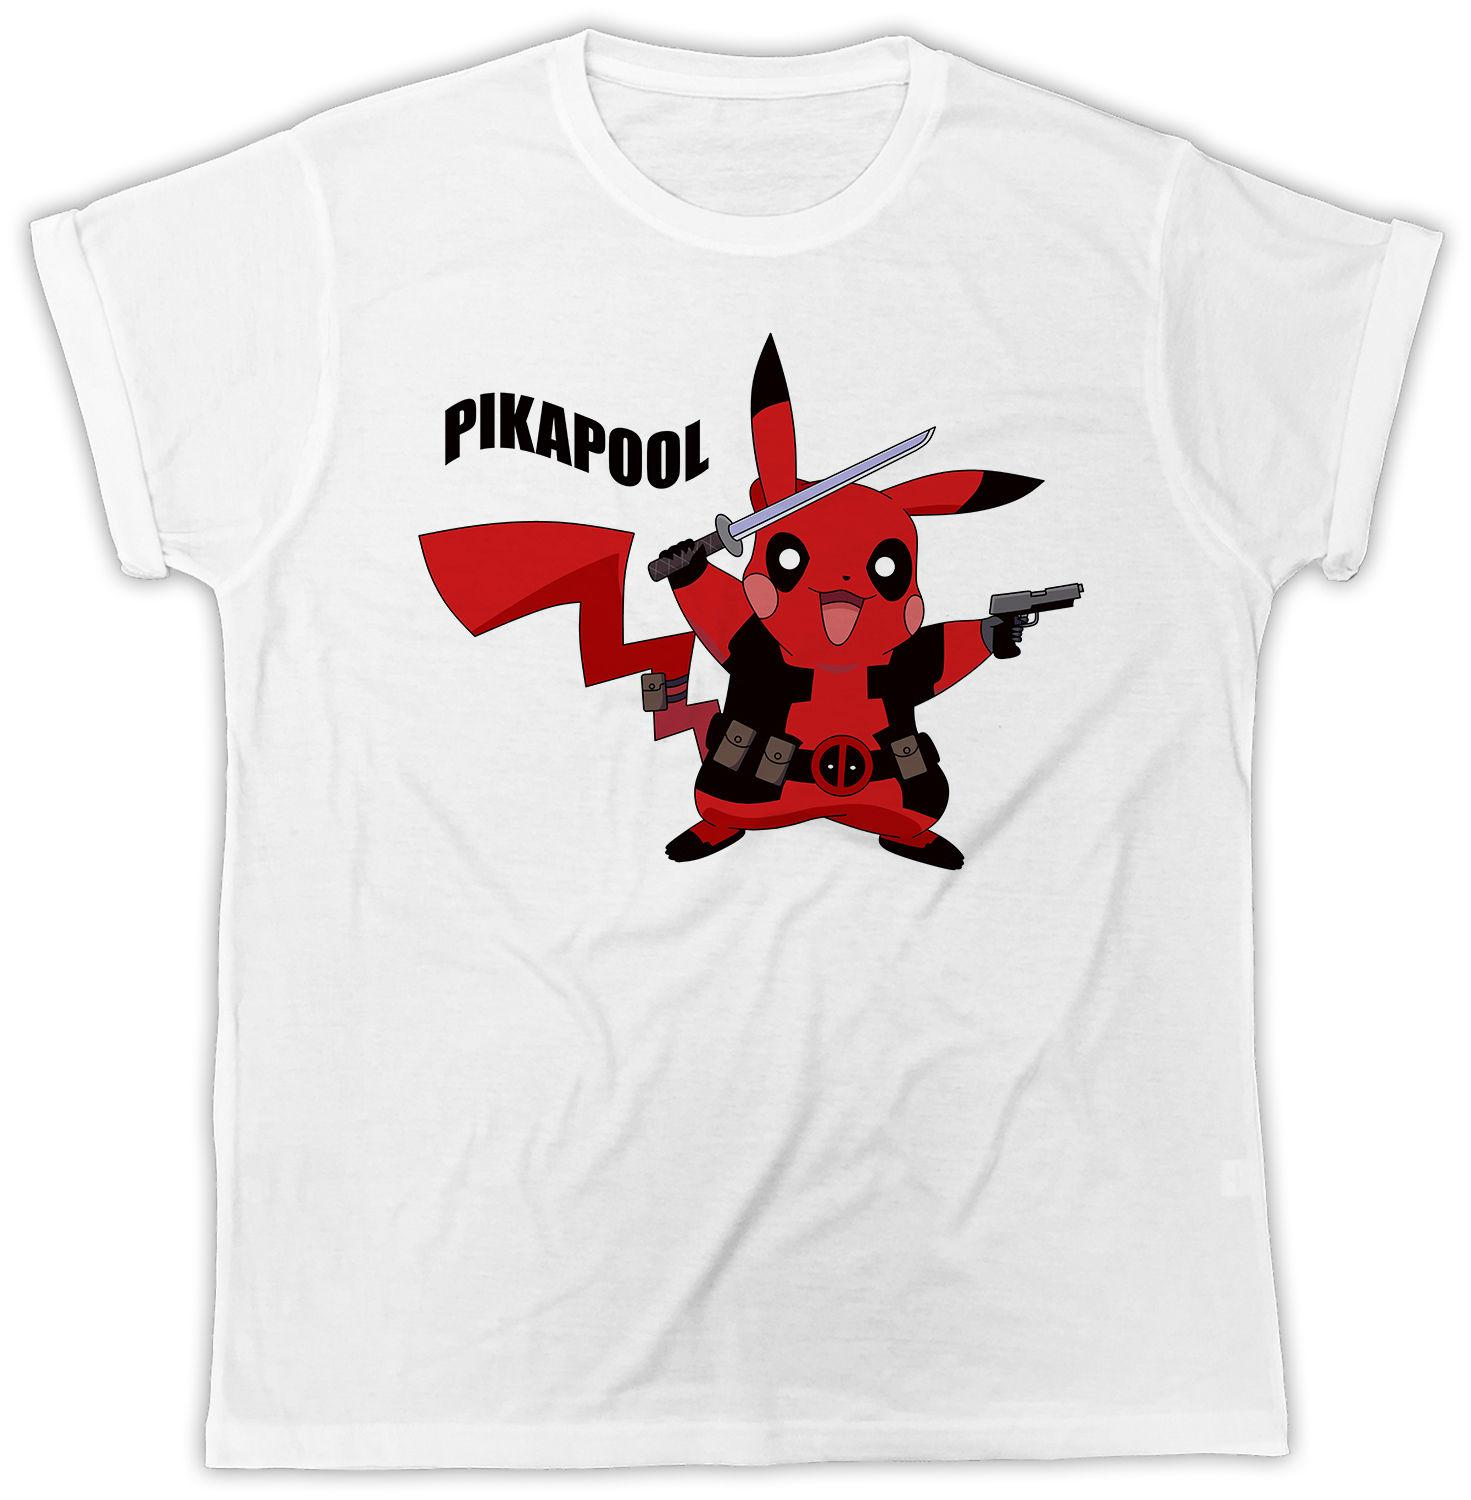 68e42204 FUNNY PIKAPOOL PIKACHU DEADPOOL MOVIE POSTER COOL IDEAL GIFT FASHION TSHIRT  Gift Print T Shirt,Hip Hop Tee Shirt,NEW ARRIVAL Tees Funny Printed T Shirts  ...